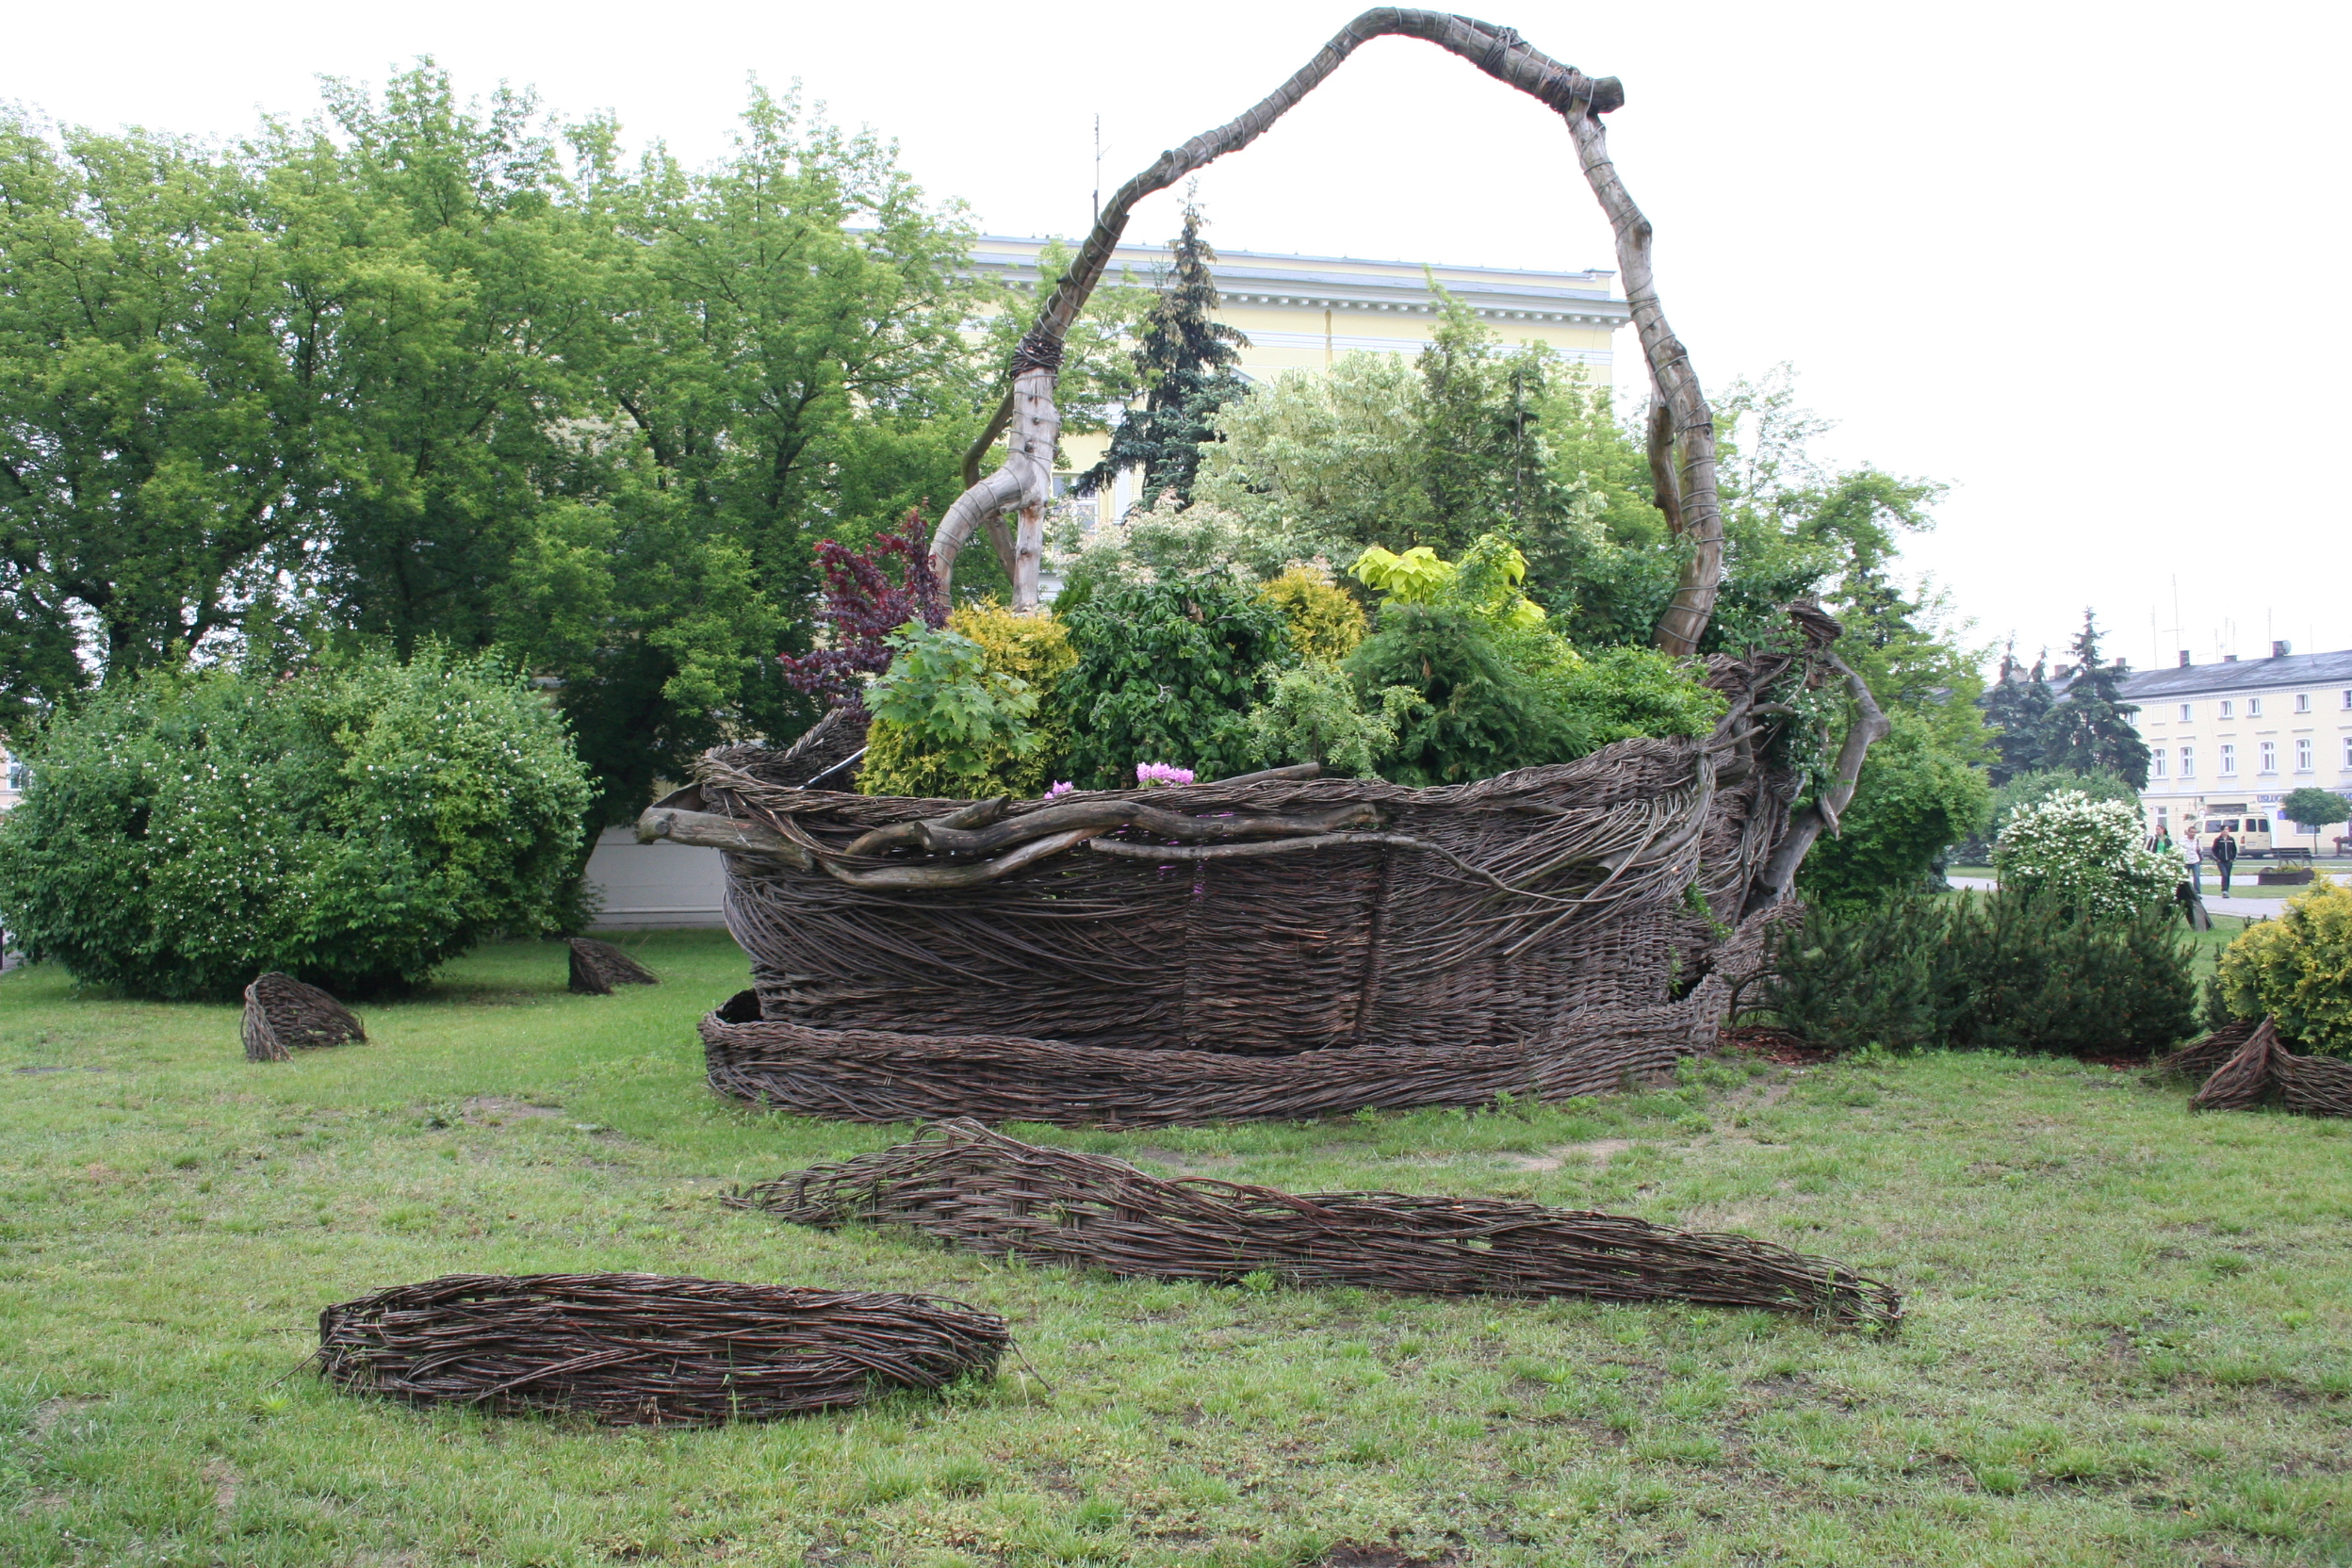 English: The worlds biggest wicker basket